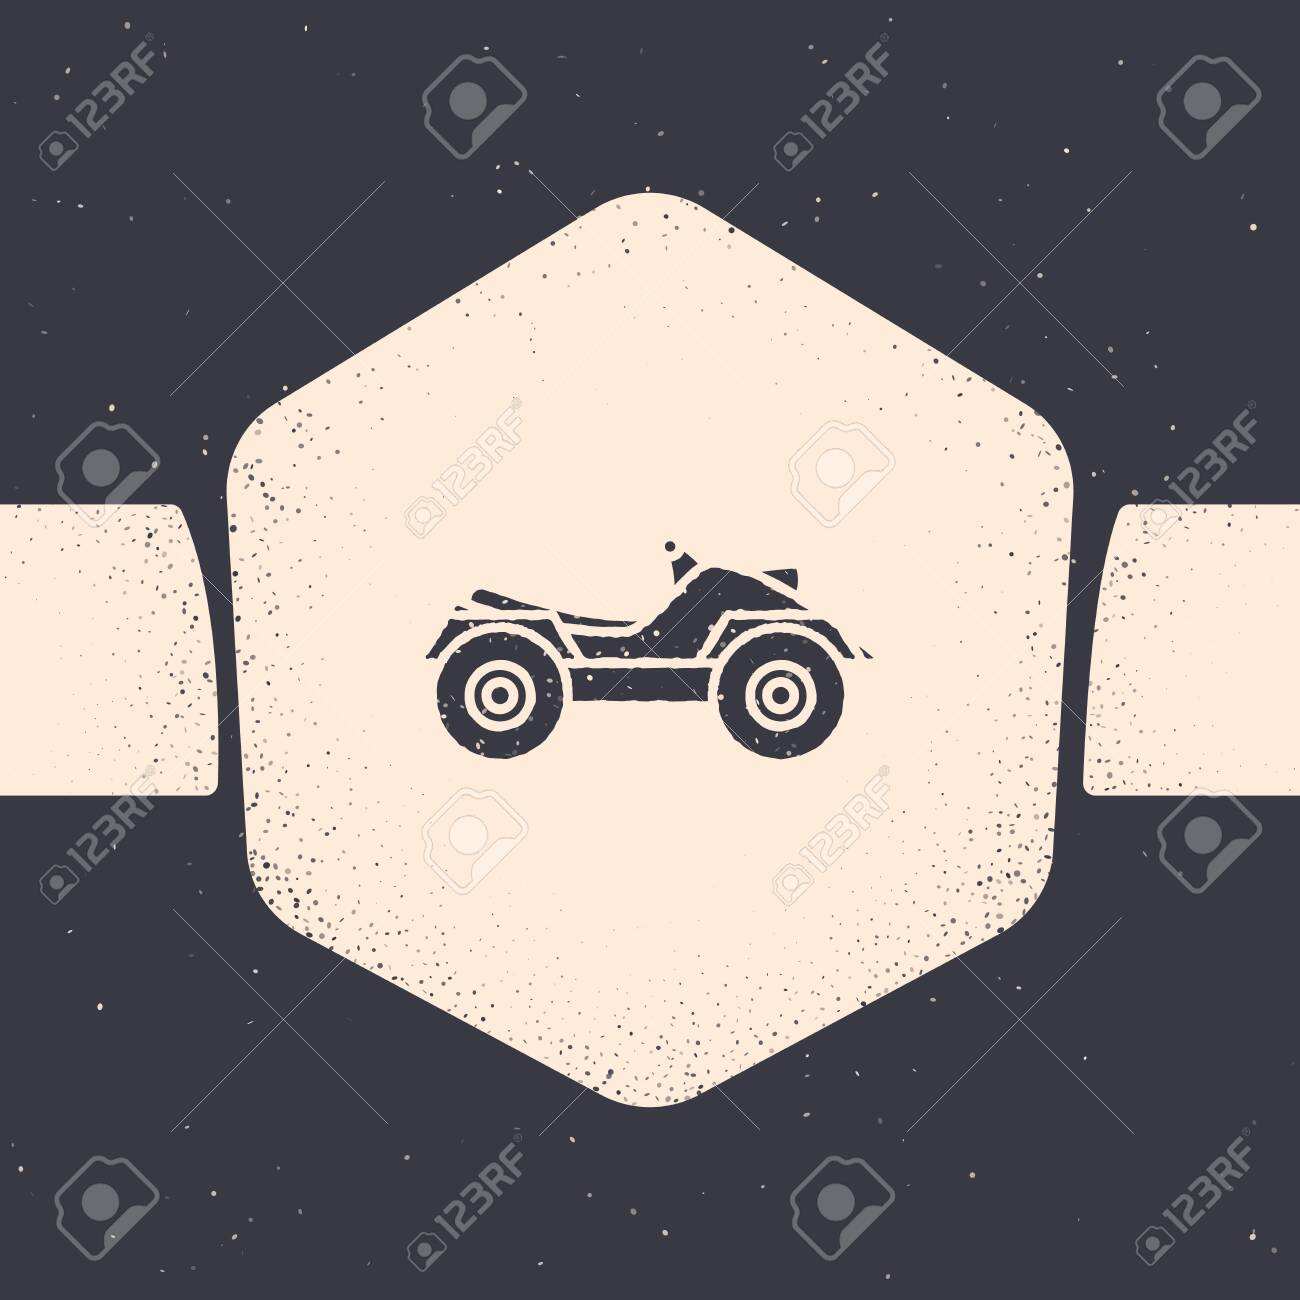 Grunge All Terrain Vehicle or ATV motorcycle icon isolated on grey background. Quad bike. Extreme sport. Monochrome vintage drawing. Vector Illustration - 129687385